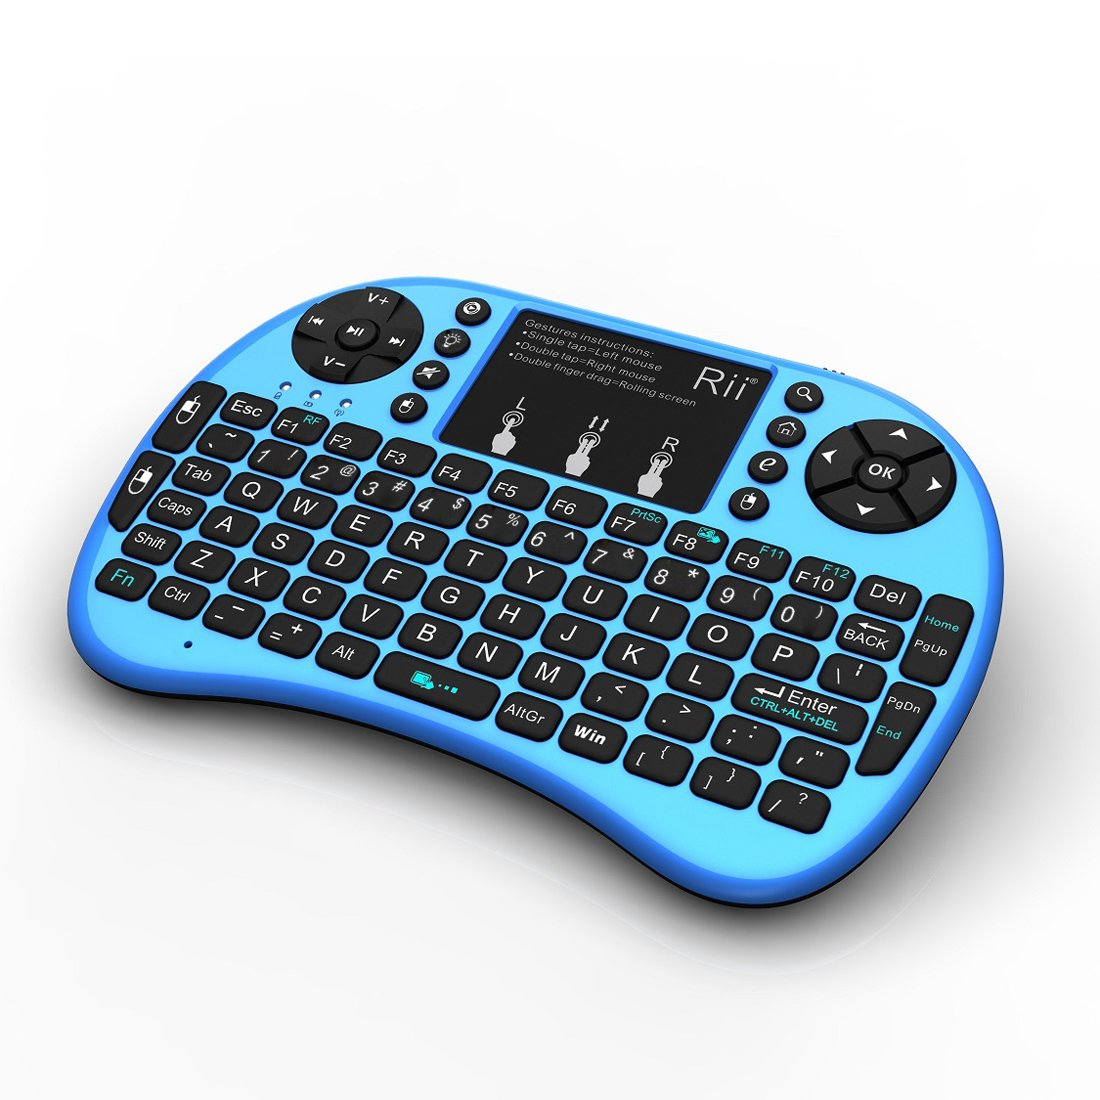 Rii Bluetooth Keyboard Android: Top 10 Best Wireless Keyboard For XBMC Android TV Box 2019